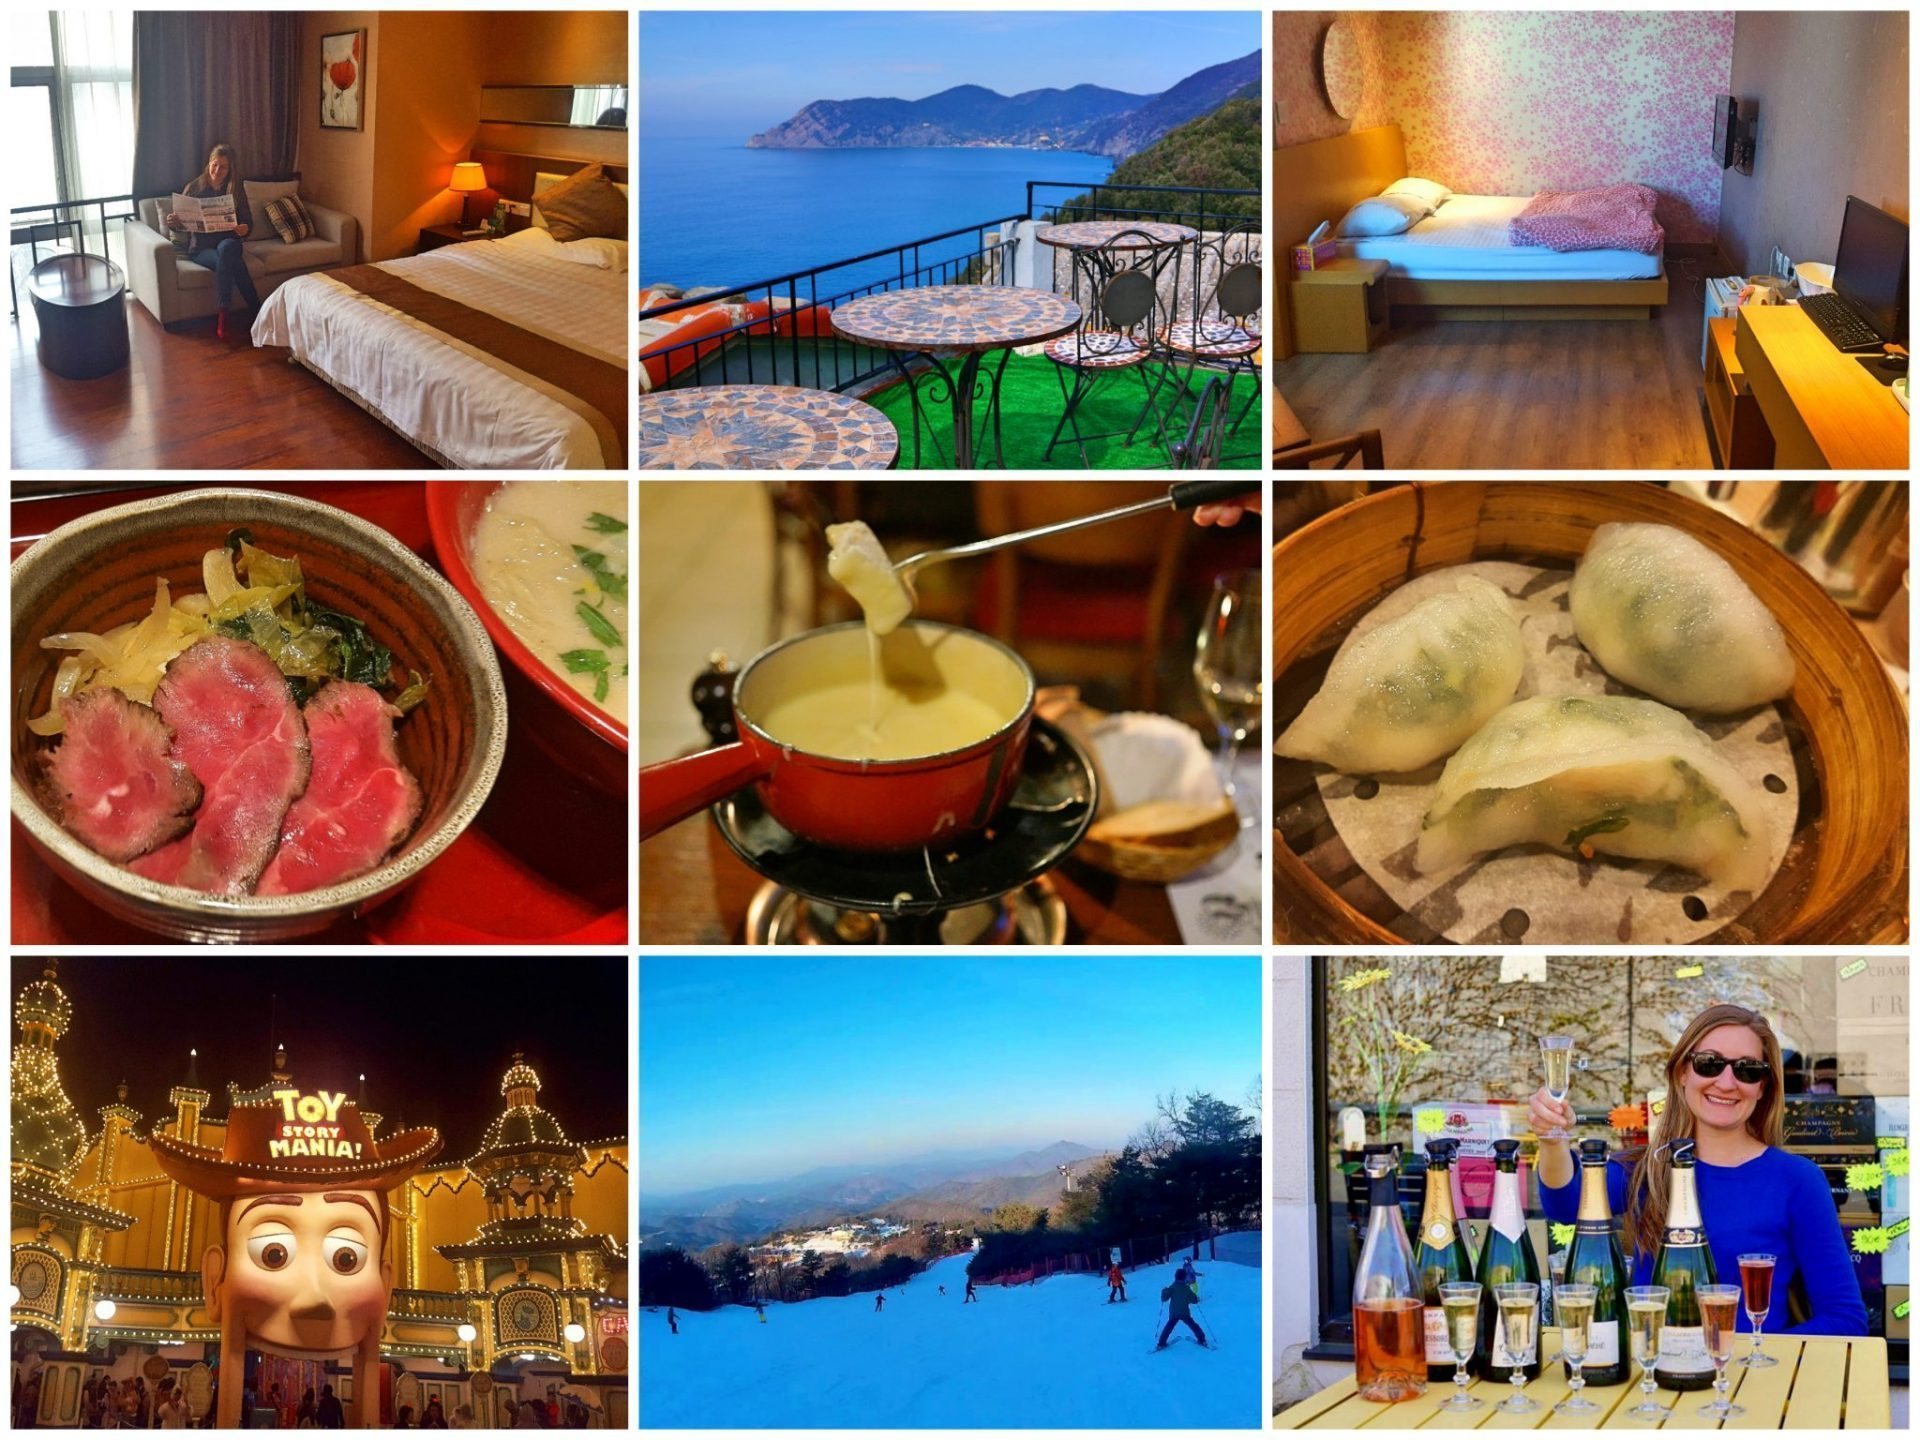 Cheap Round the World collage showing accommodation, food, and experiences